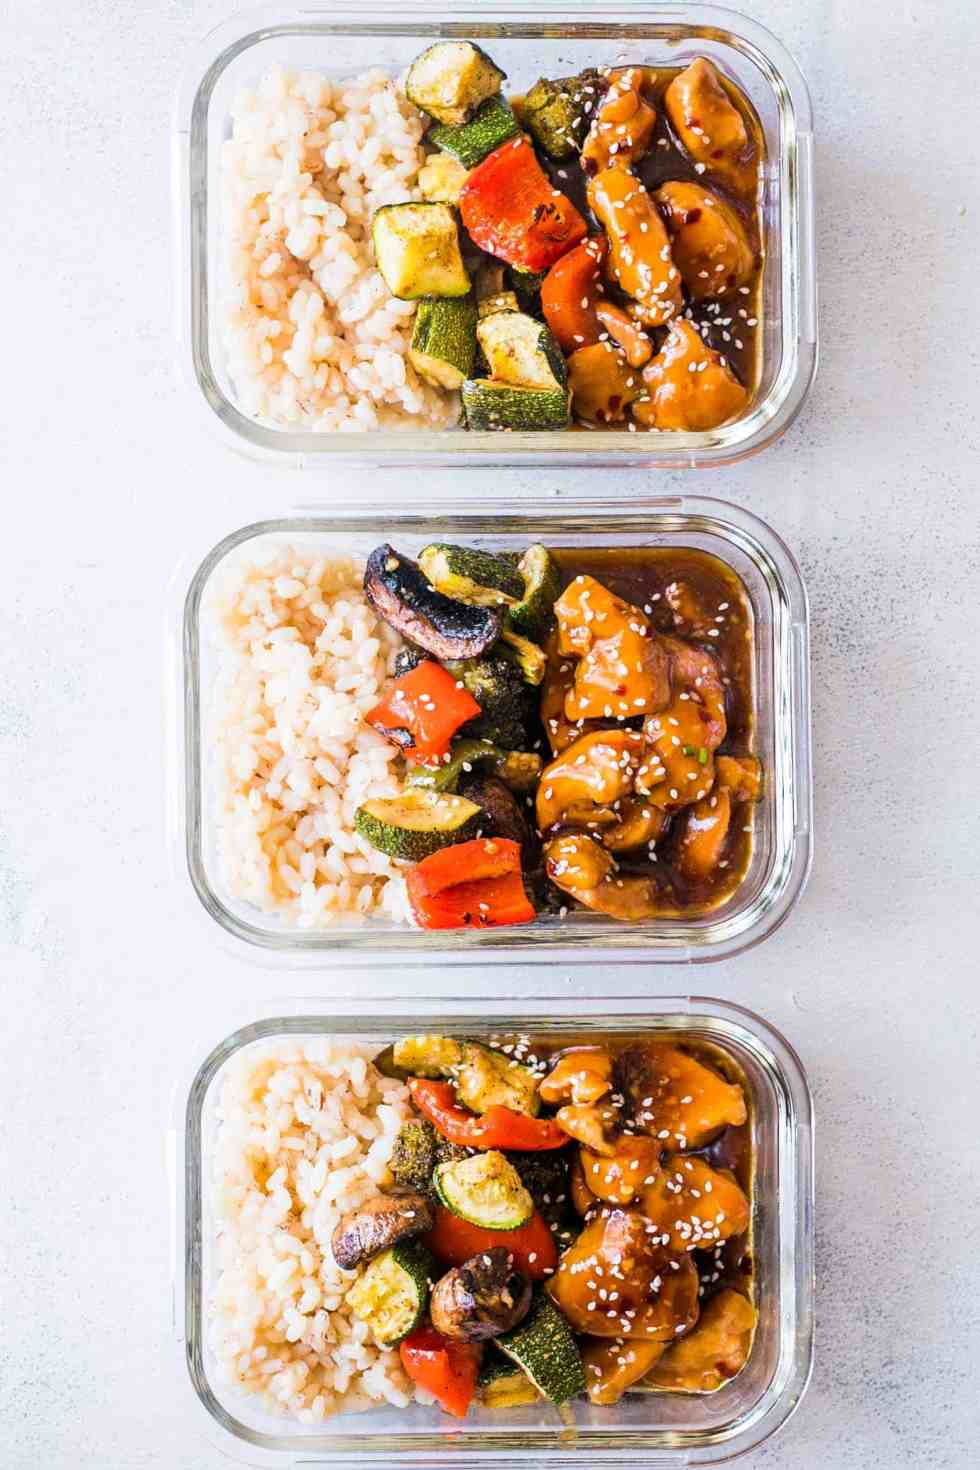 teriyaki chicken stir fry meal prep lunch boxes my food story. Black Bedroom Furniture Sets. Home Design Ideas